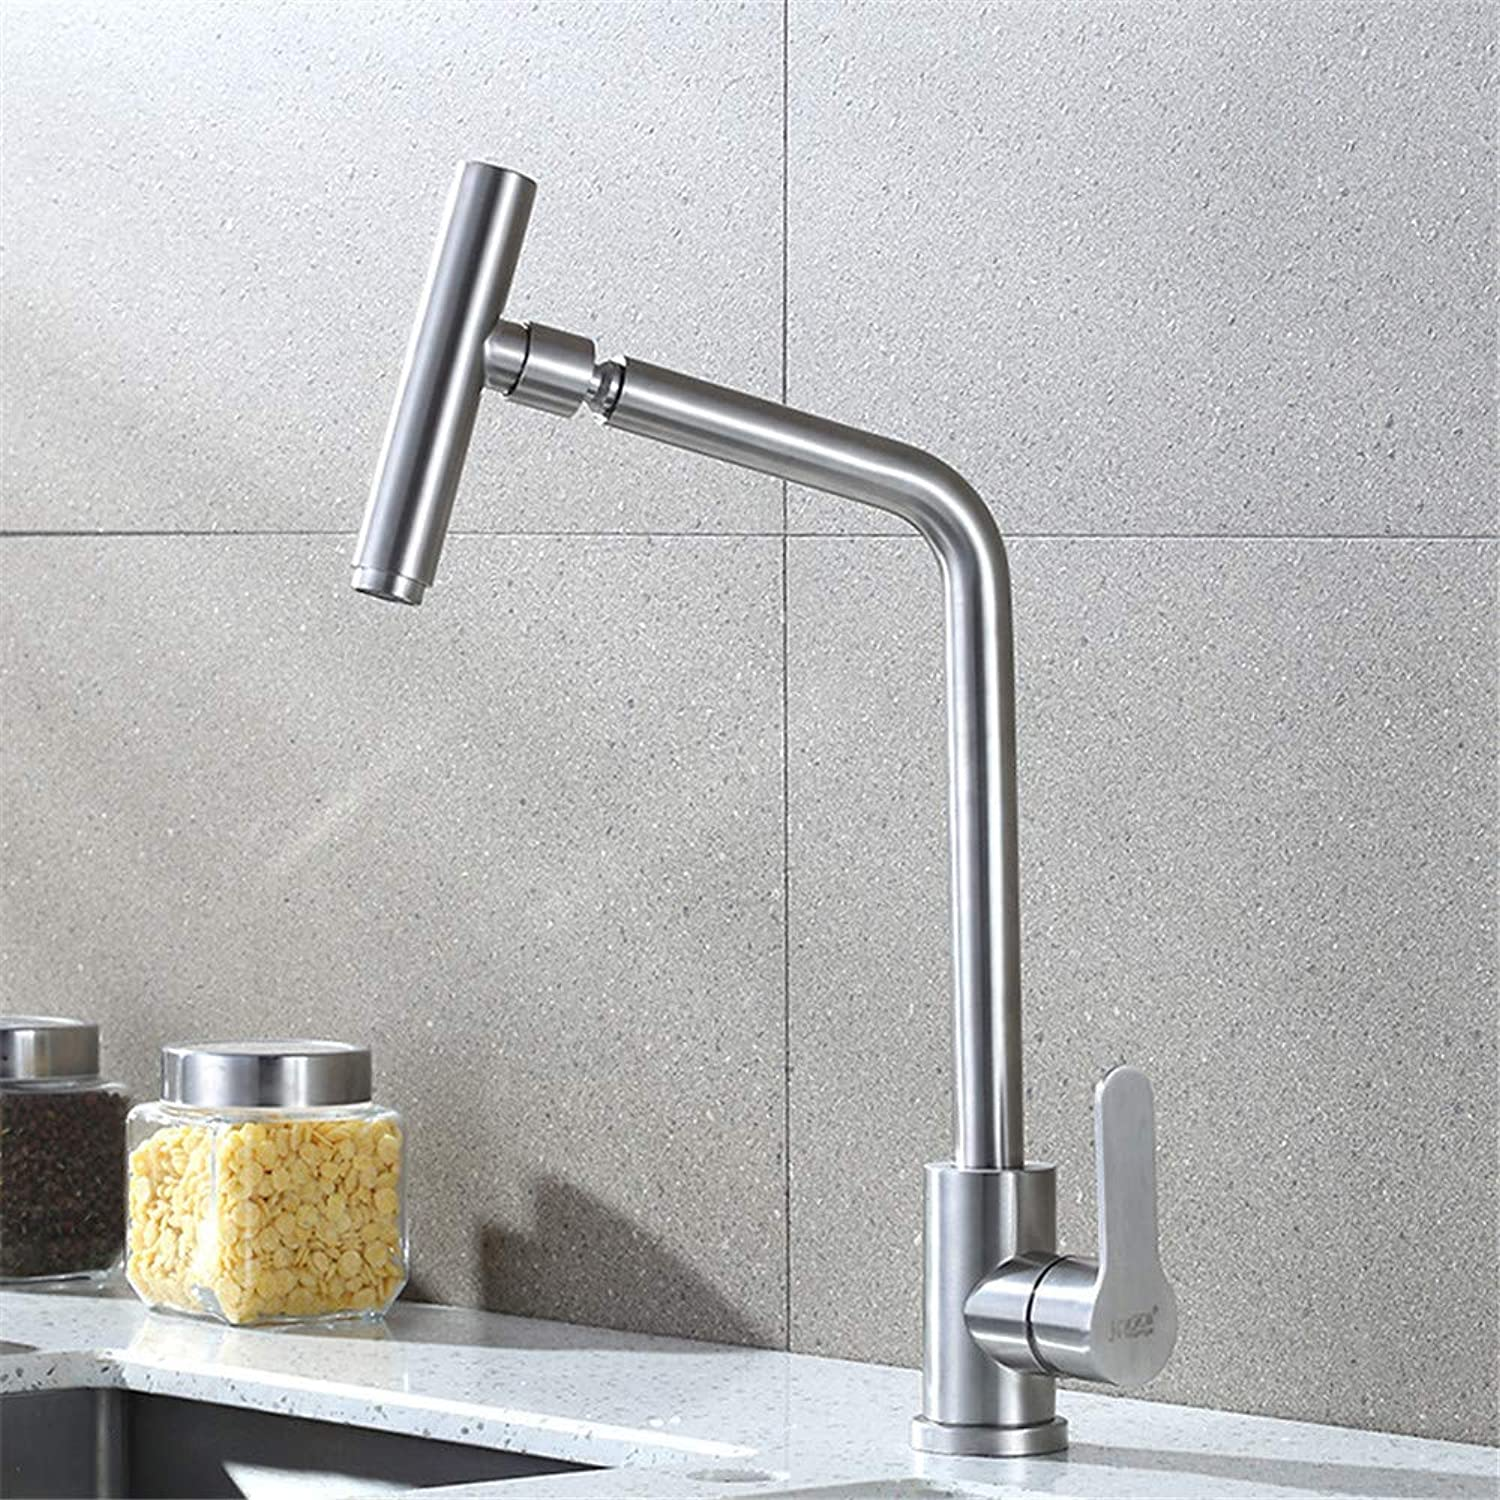 WFVR Stainless steel brushed universal kitchen sink hot and cold water faucet